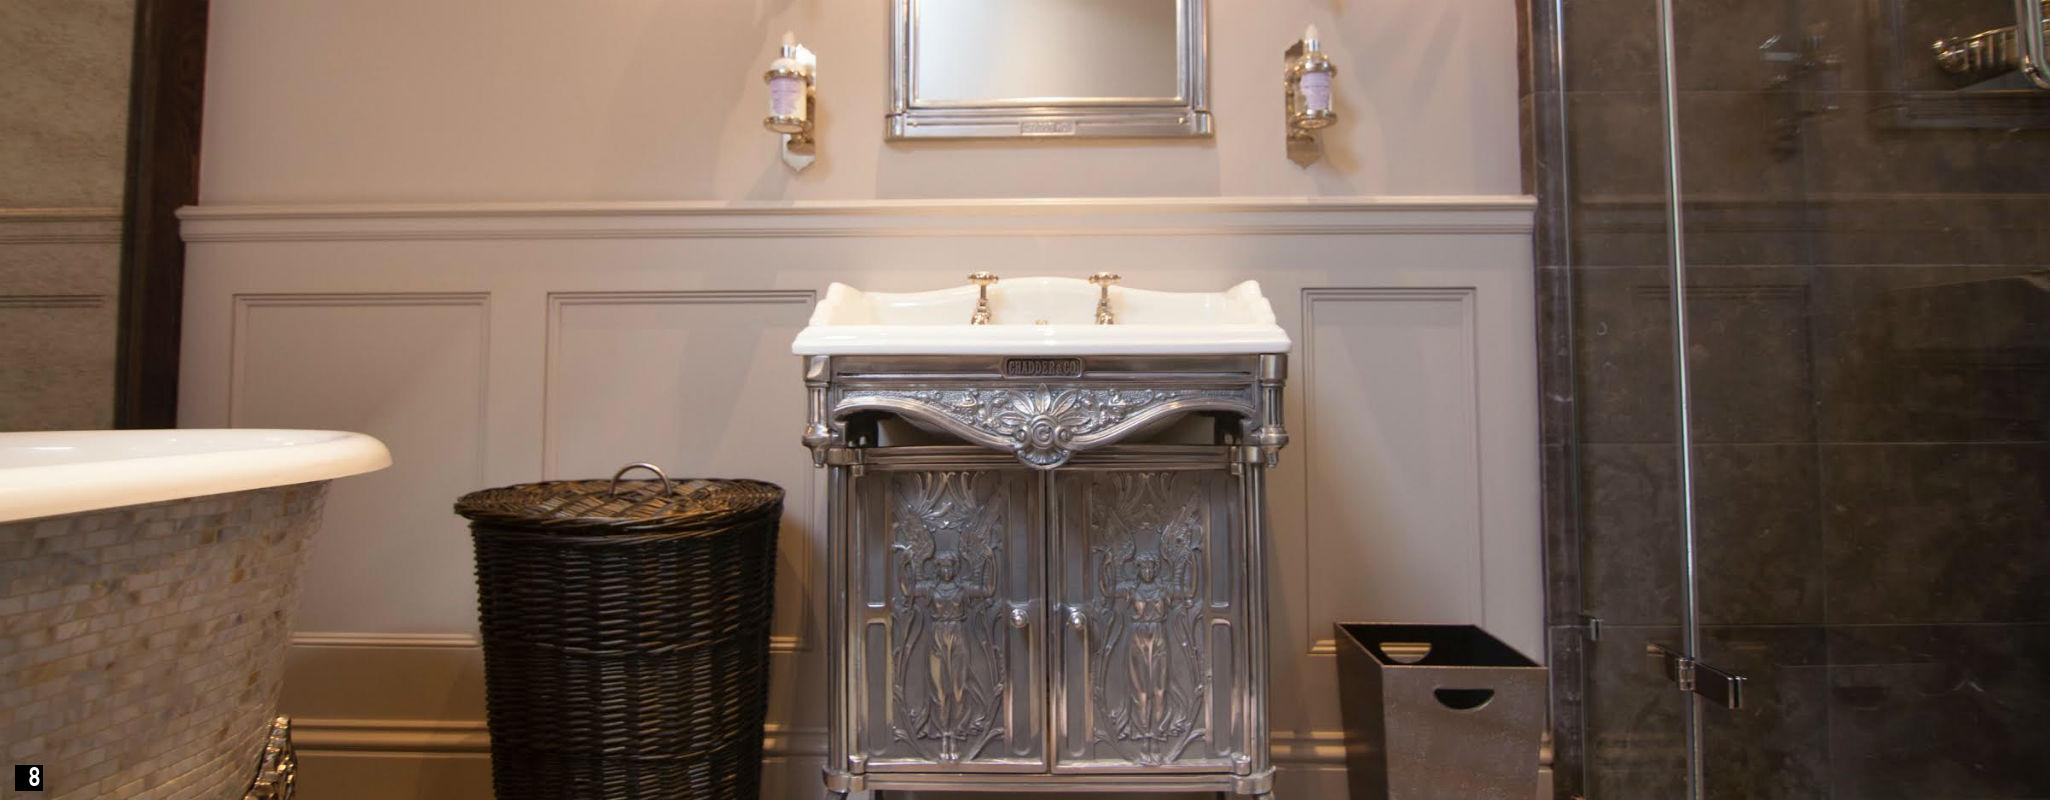 Traditional Cloakroom Accessories , Molton Brown Soap Holder , Penhaligons Soap Holder  Cloakroom Basin